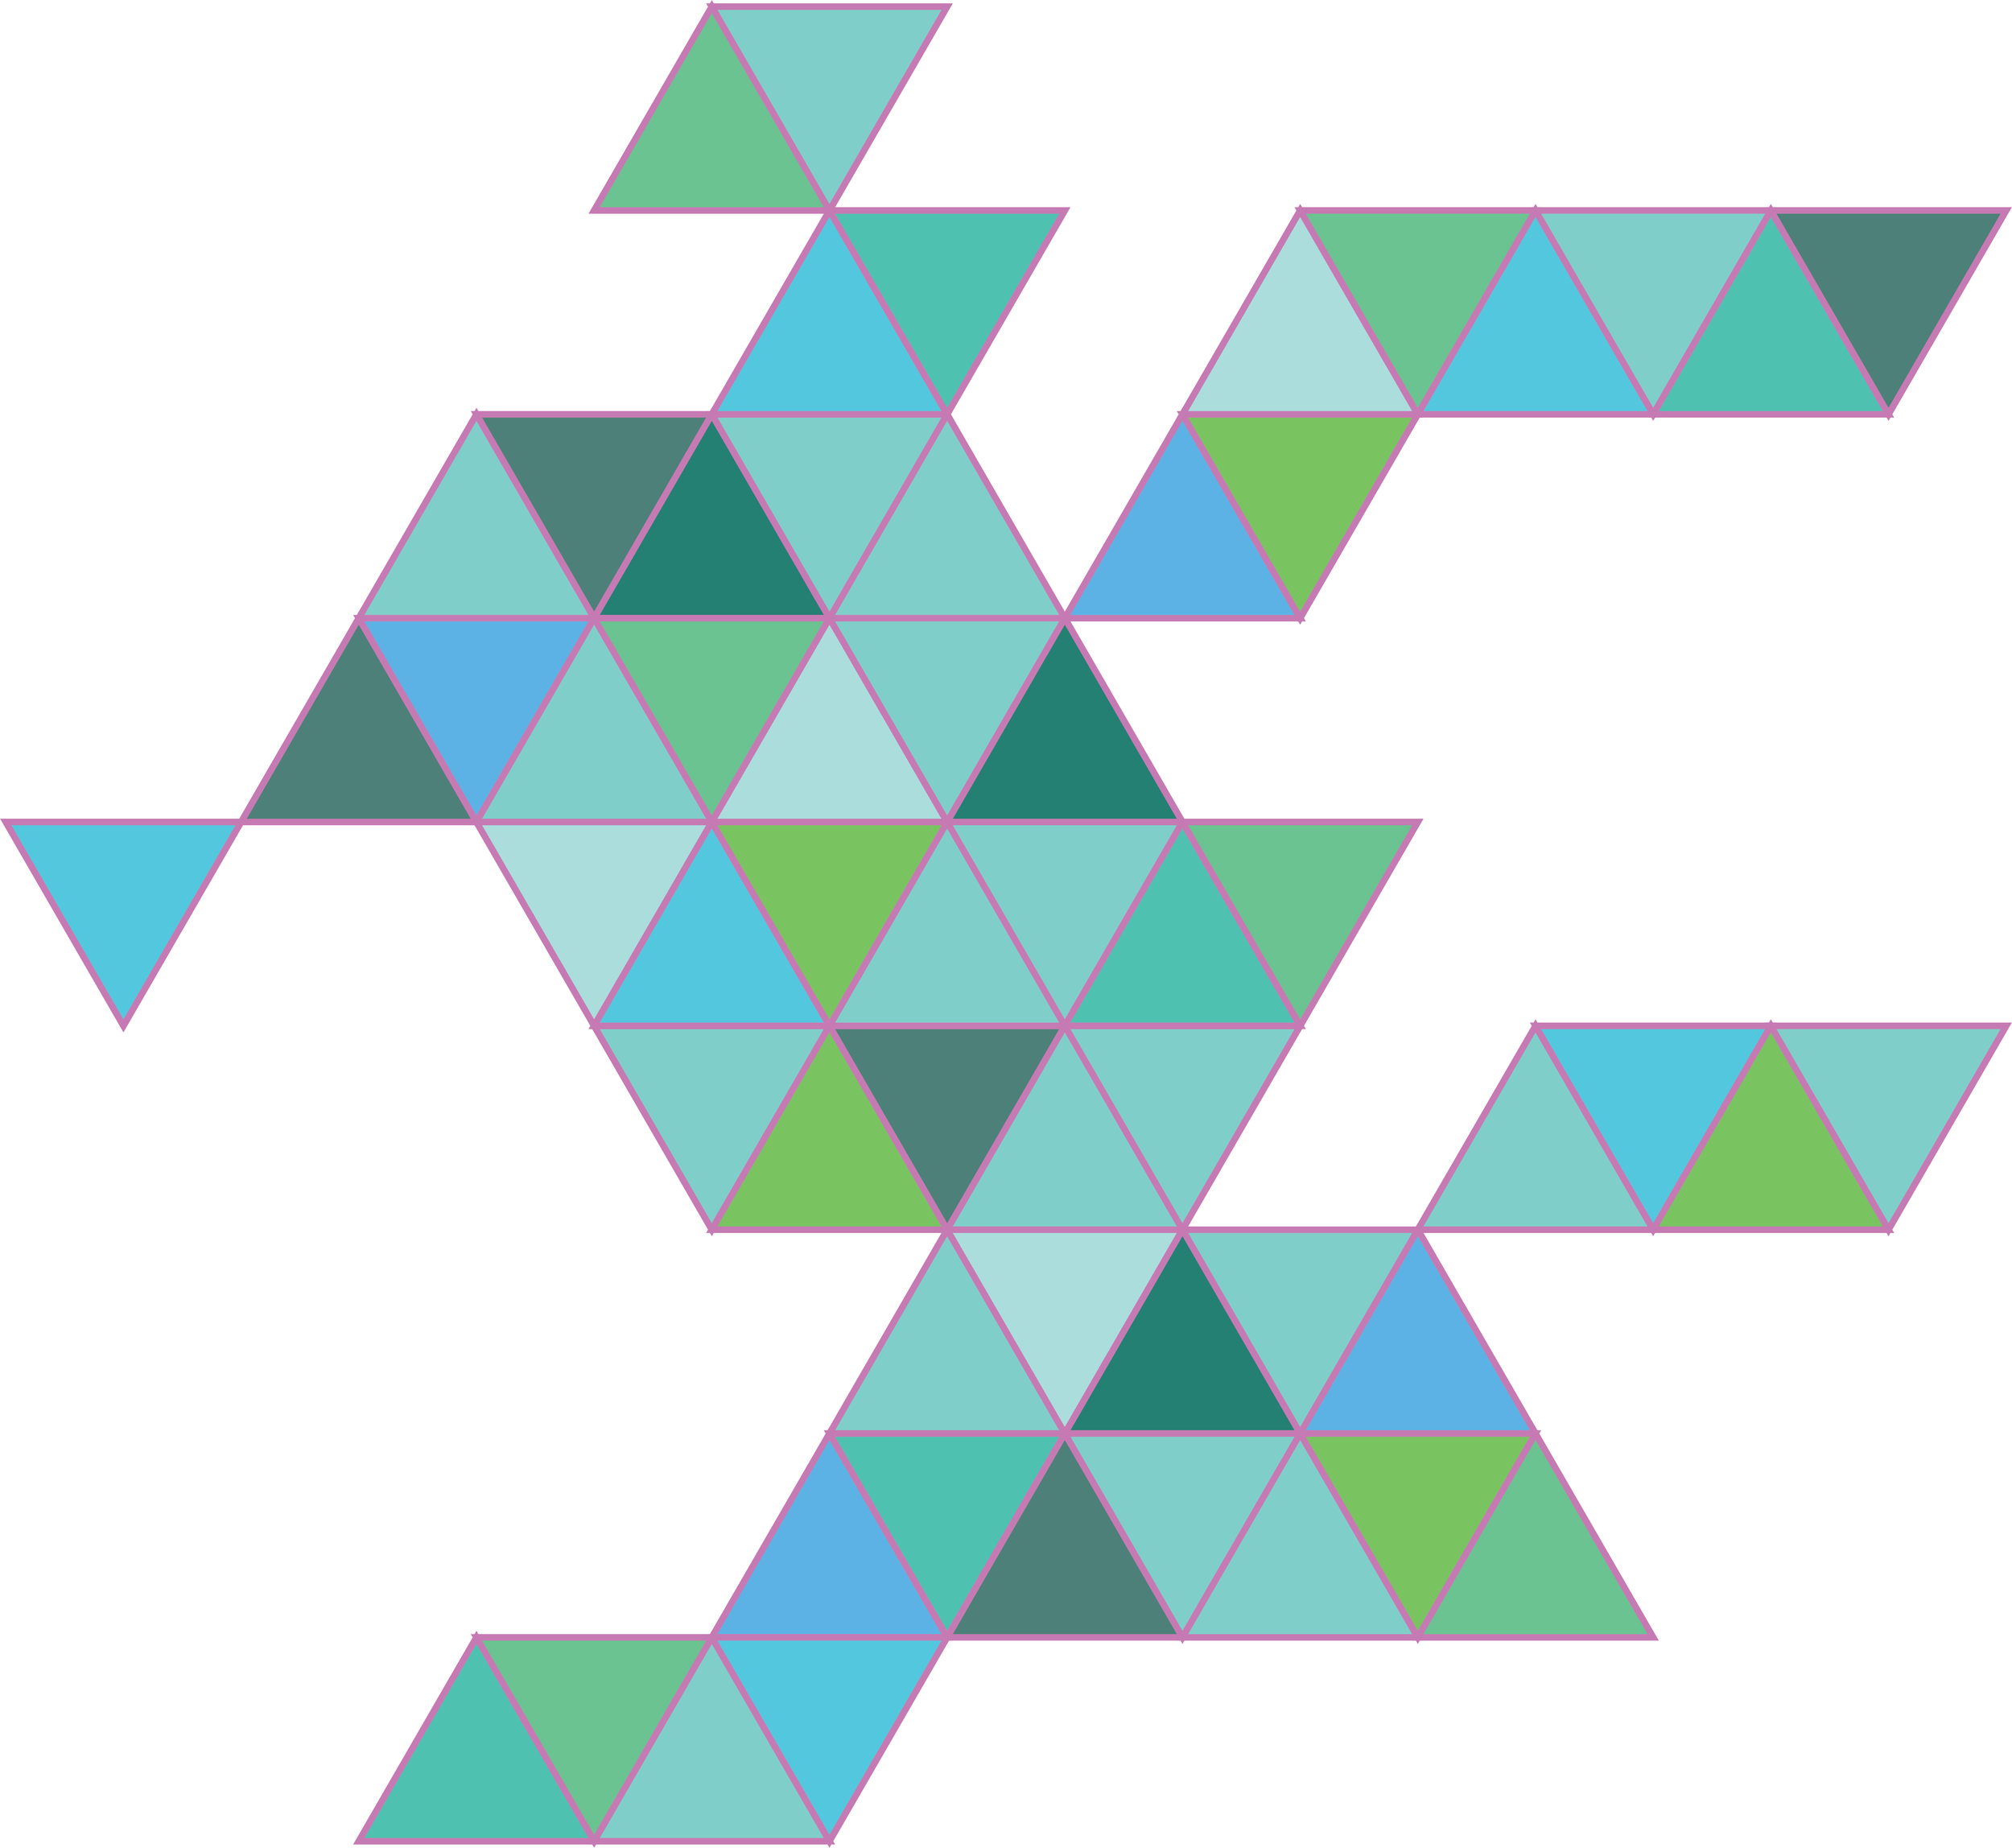 2017.11.20 triangles 3.png